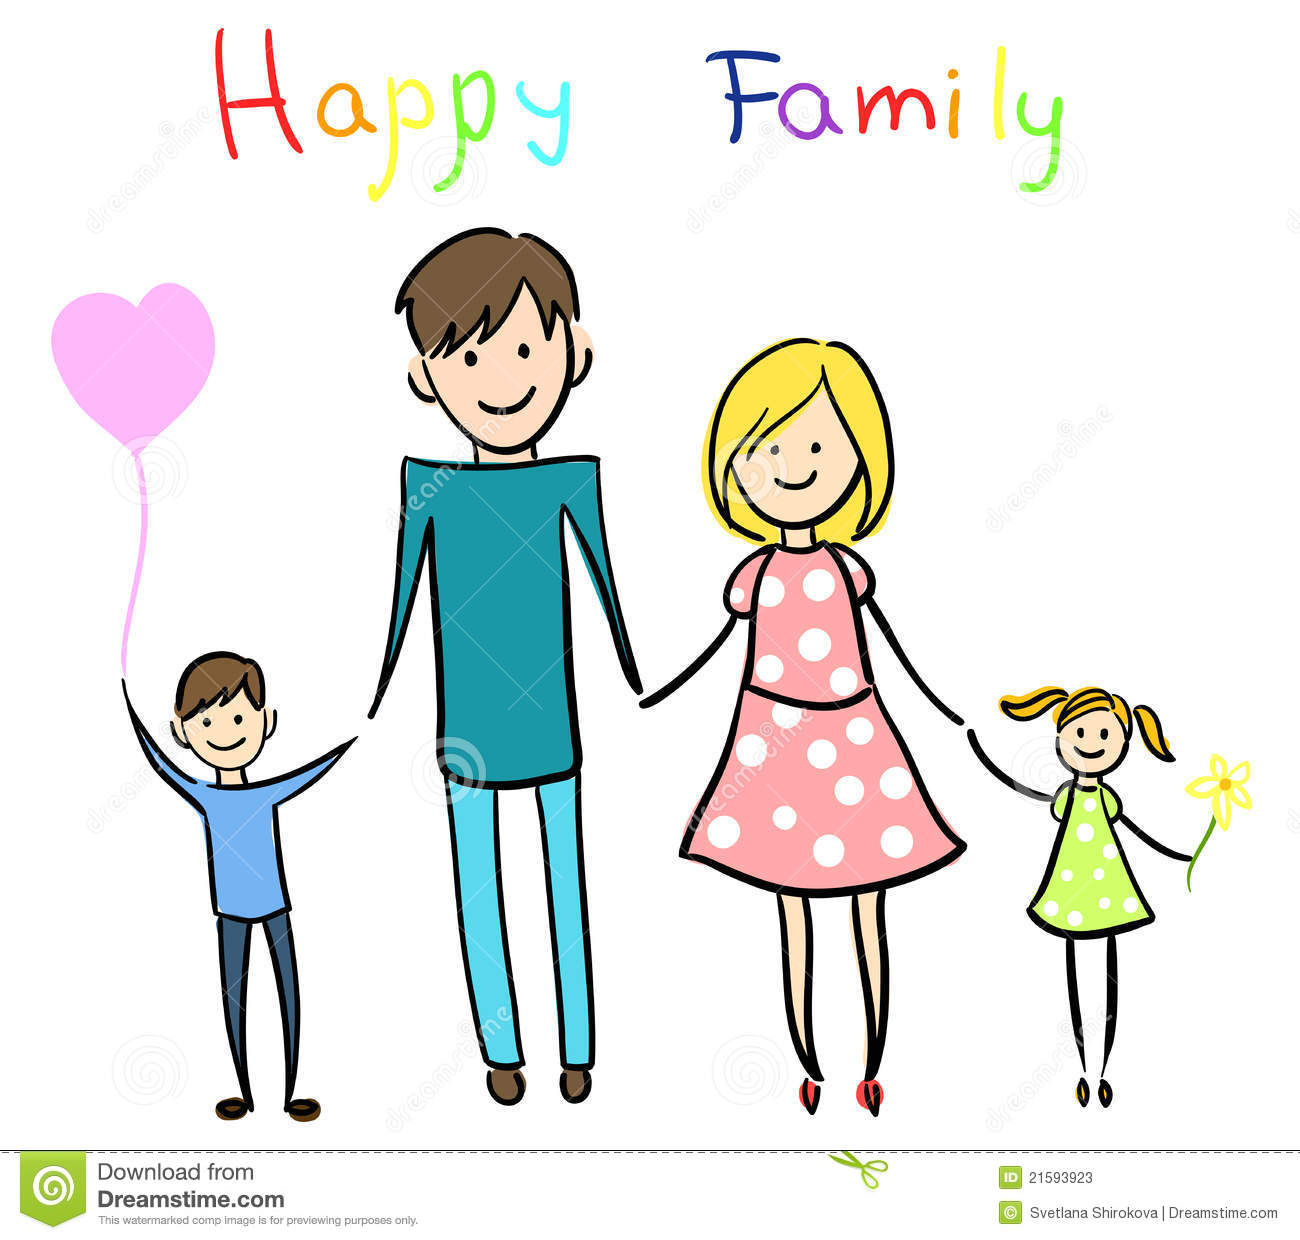 Happy Family Clipart & Happy Family Clip Art Images.